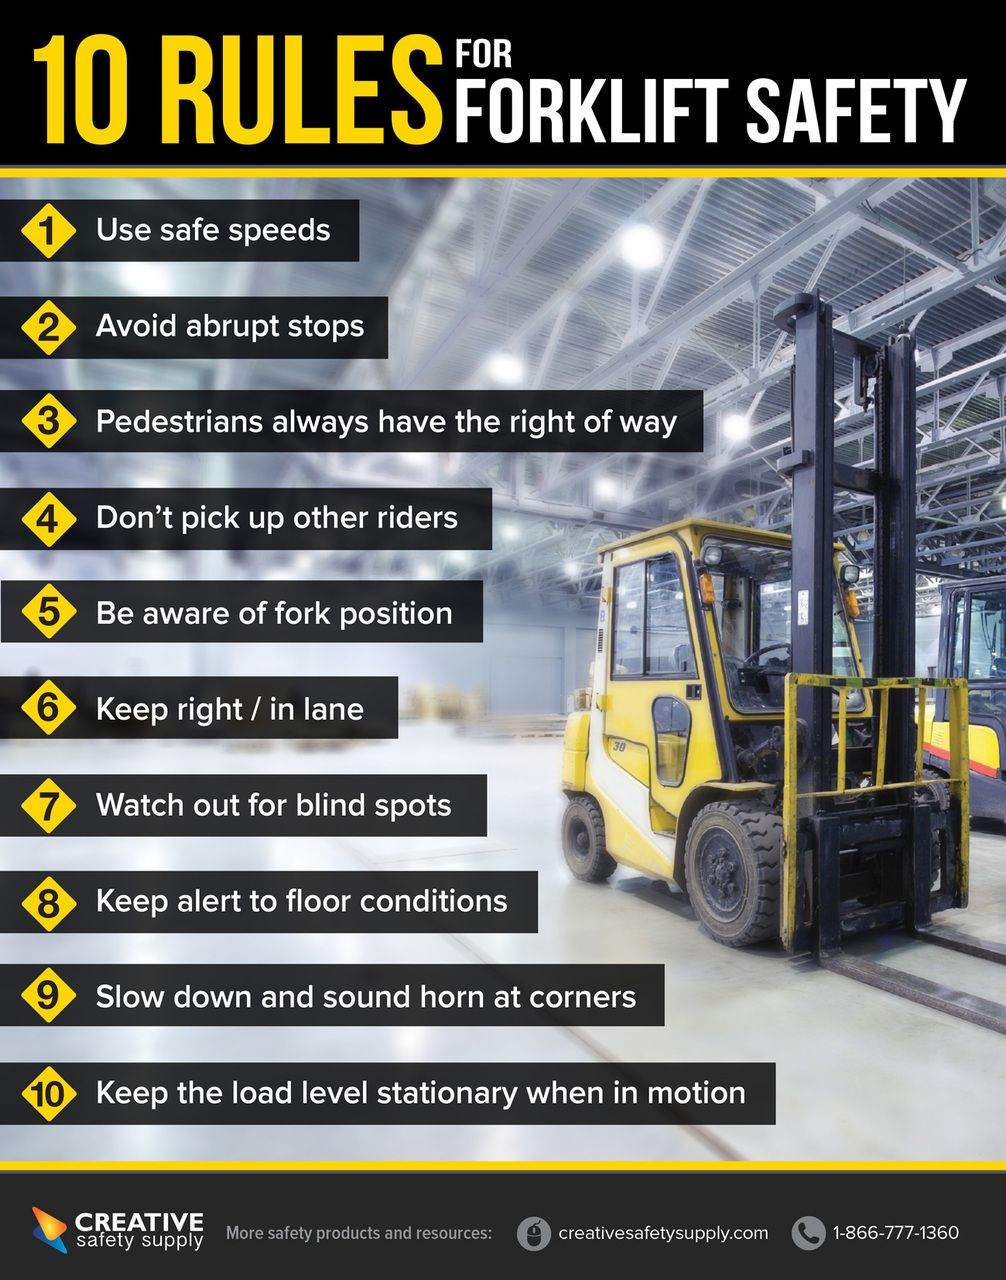 Forklift Safety Poster Health and safety poster